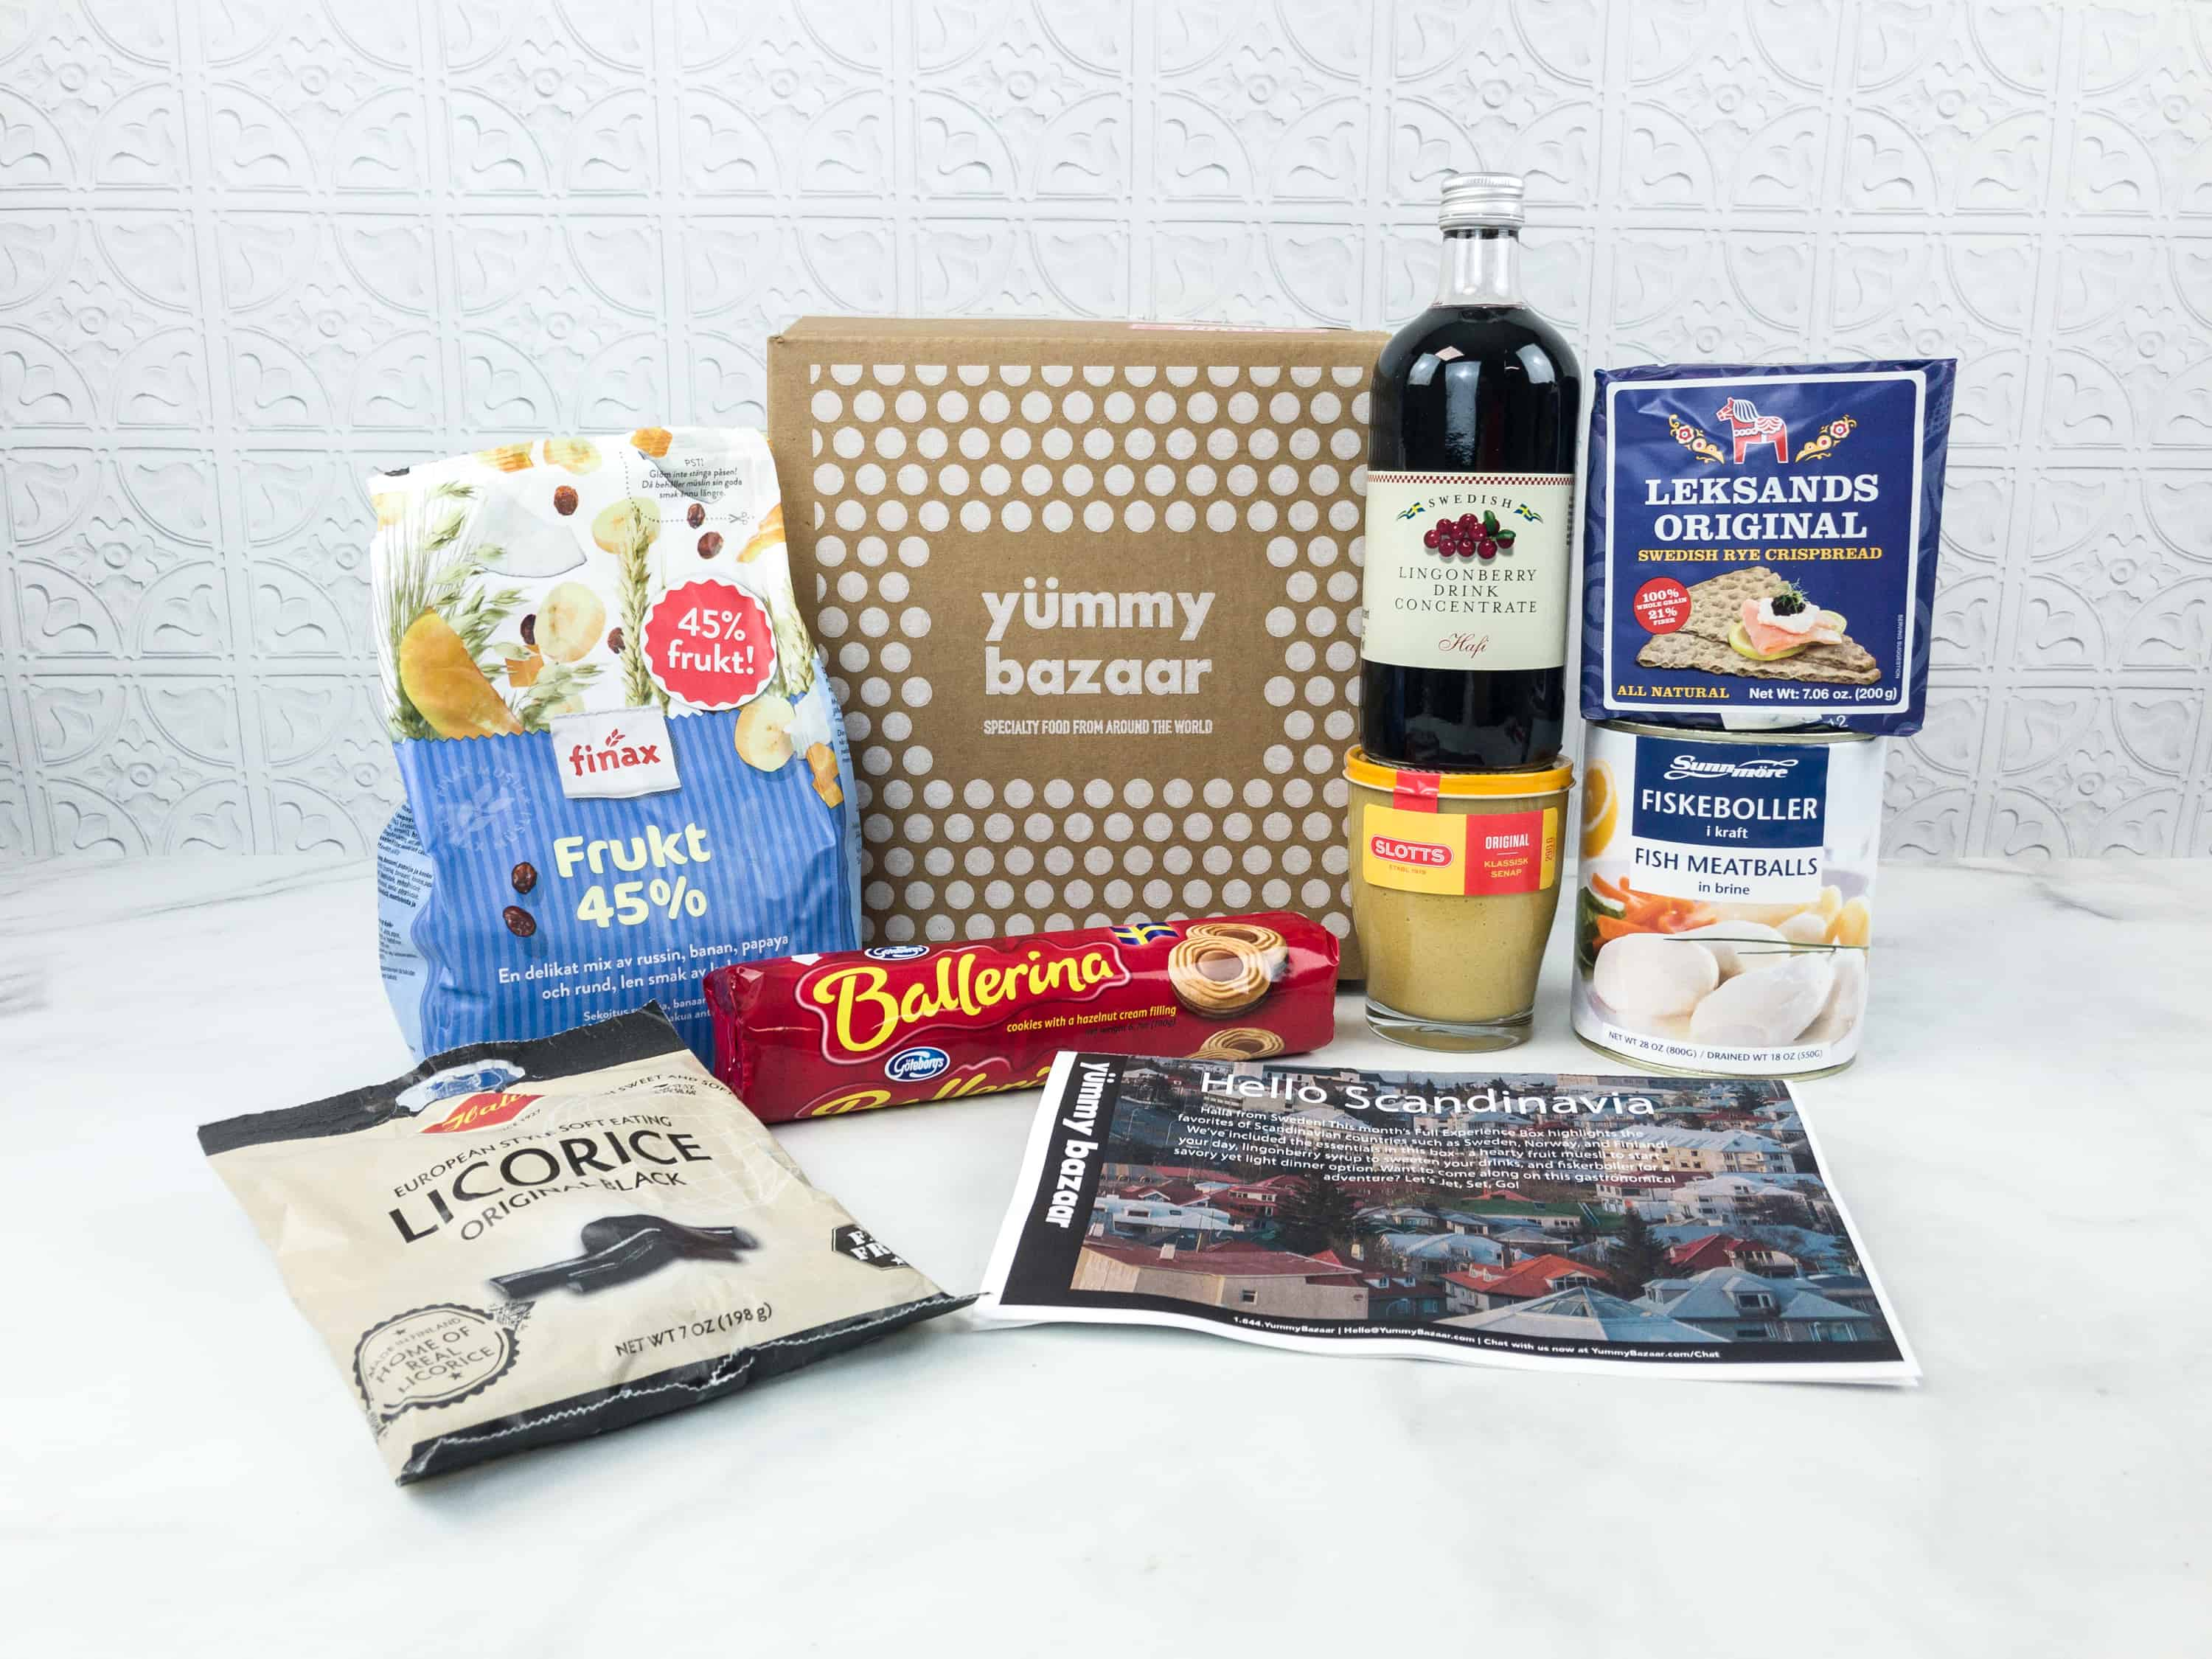 LAST DAY – Yummy Bazaar Black Friday Deal: FREE Box With Gift Subscriptions!